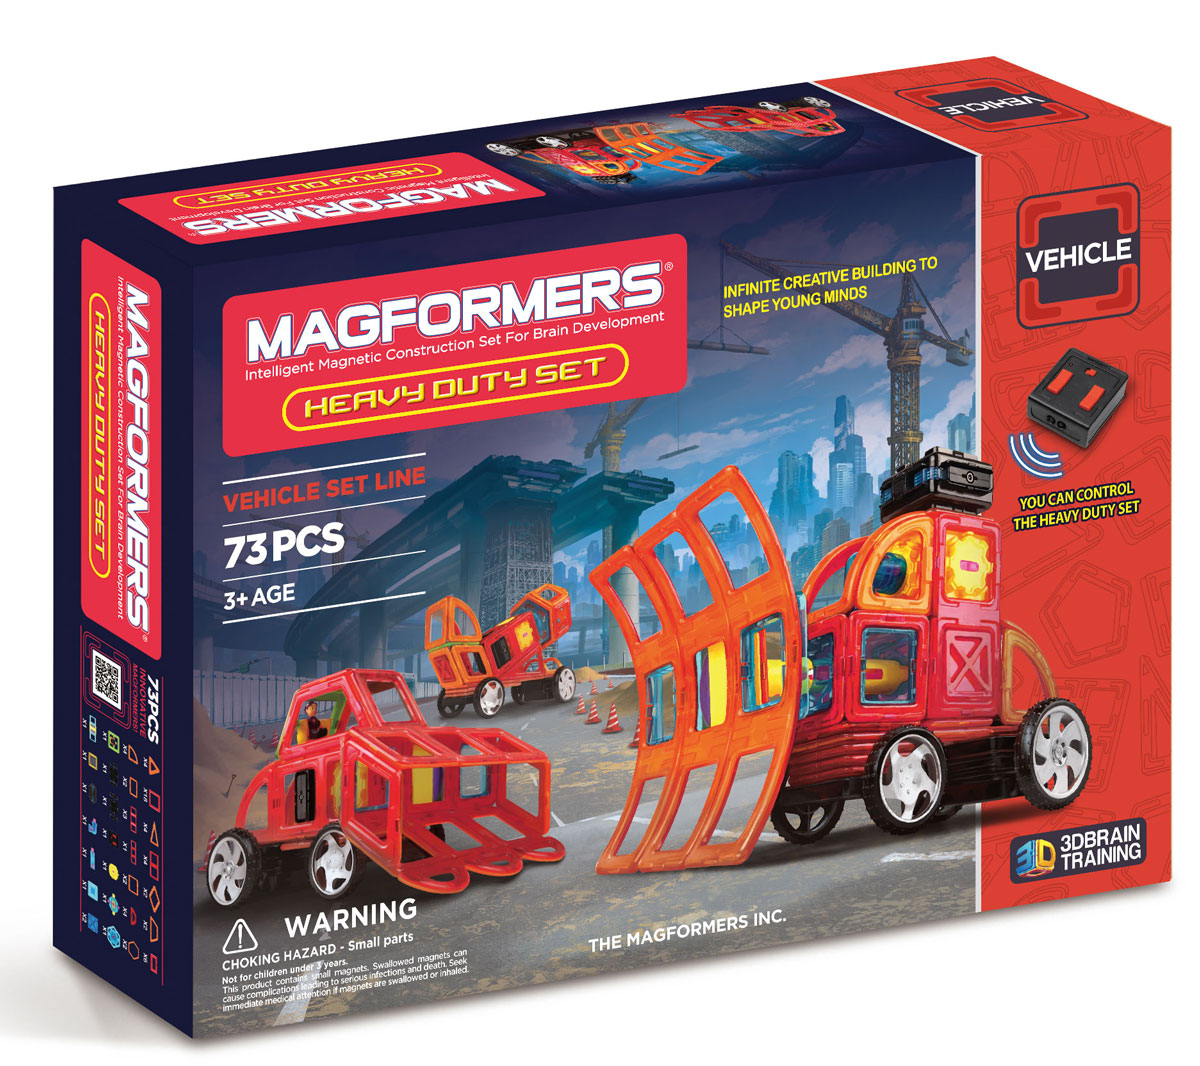 Magformers Магнитный конструктор Heavy Duty Set дырокол deli heavy duty e0130